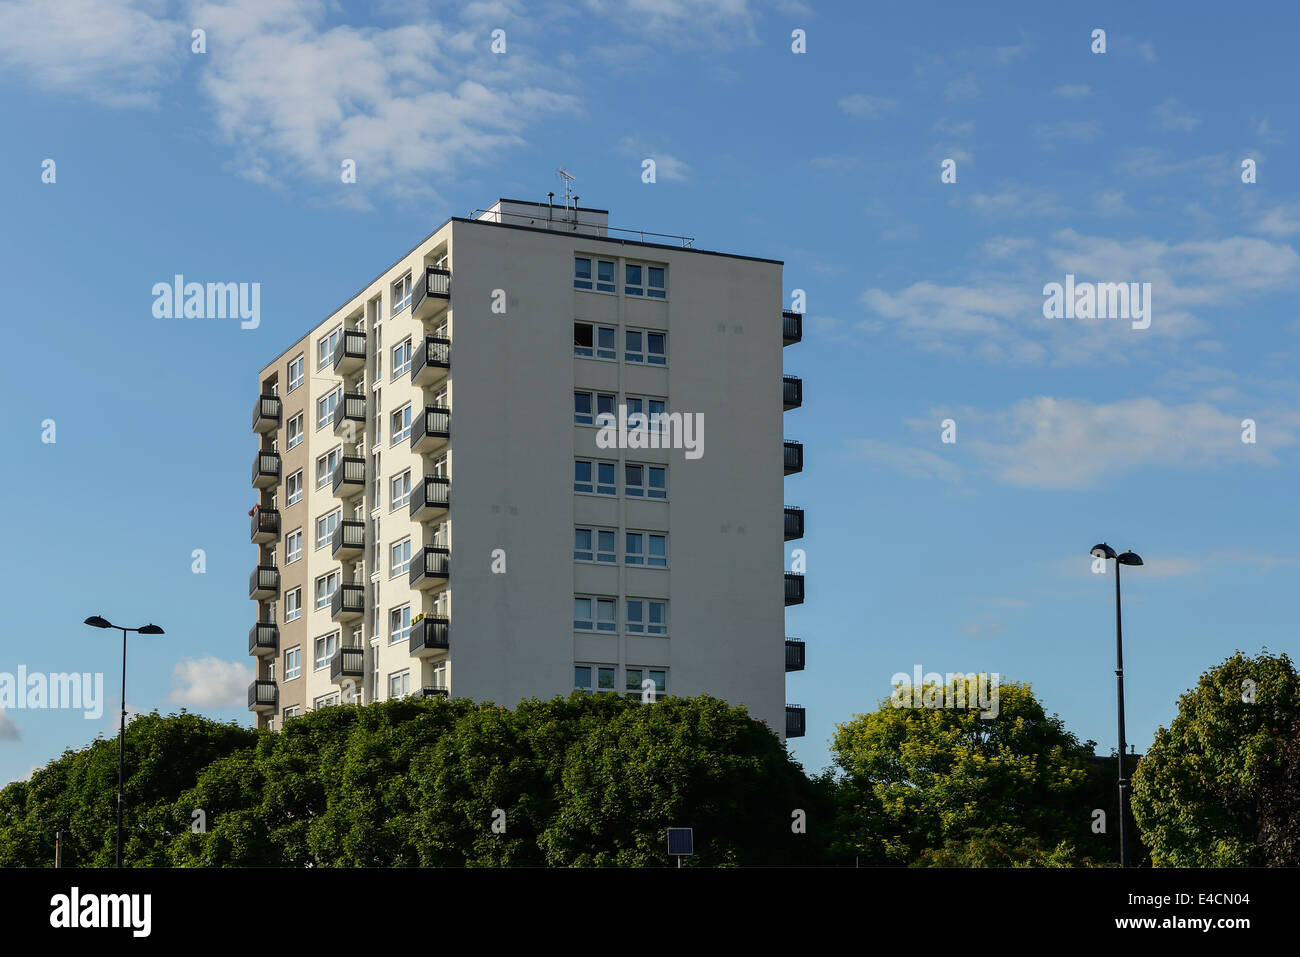 St Annes high rise flats in Chester city centre UK - Stock Image